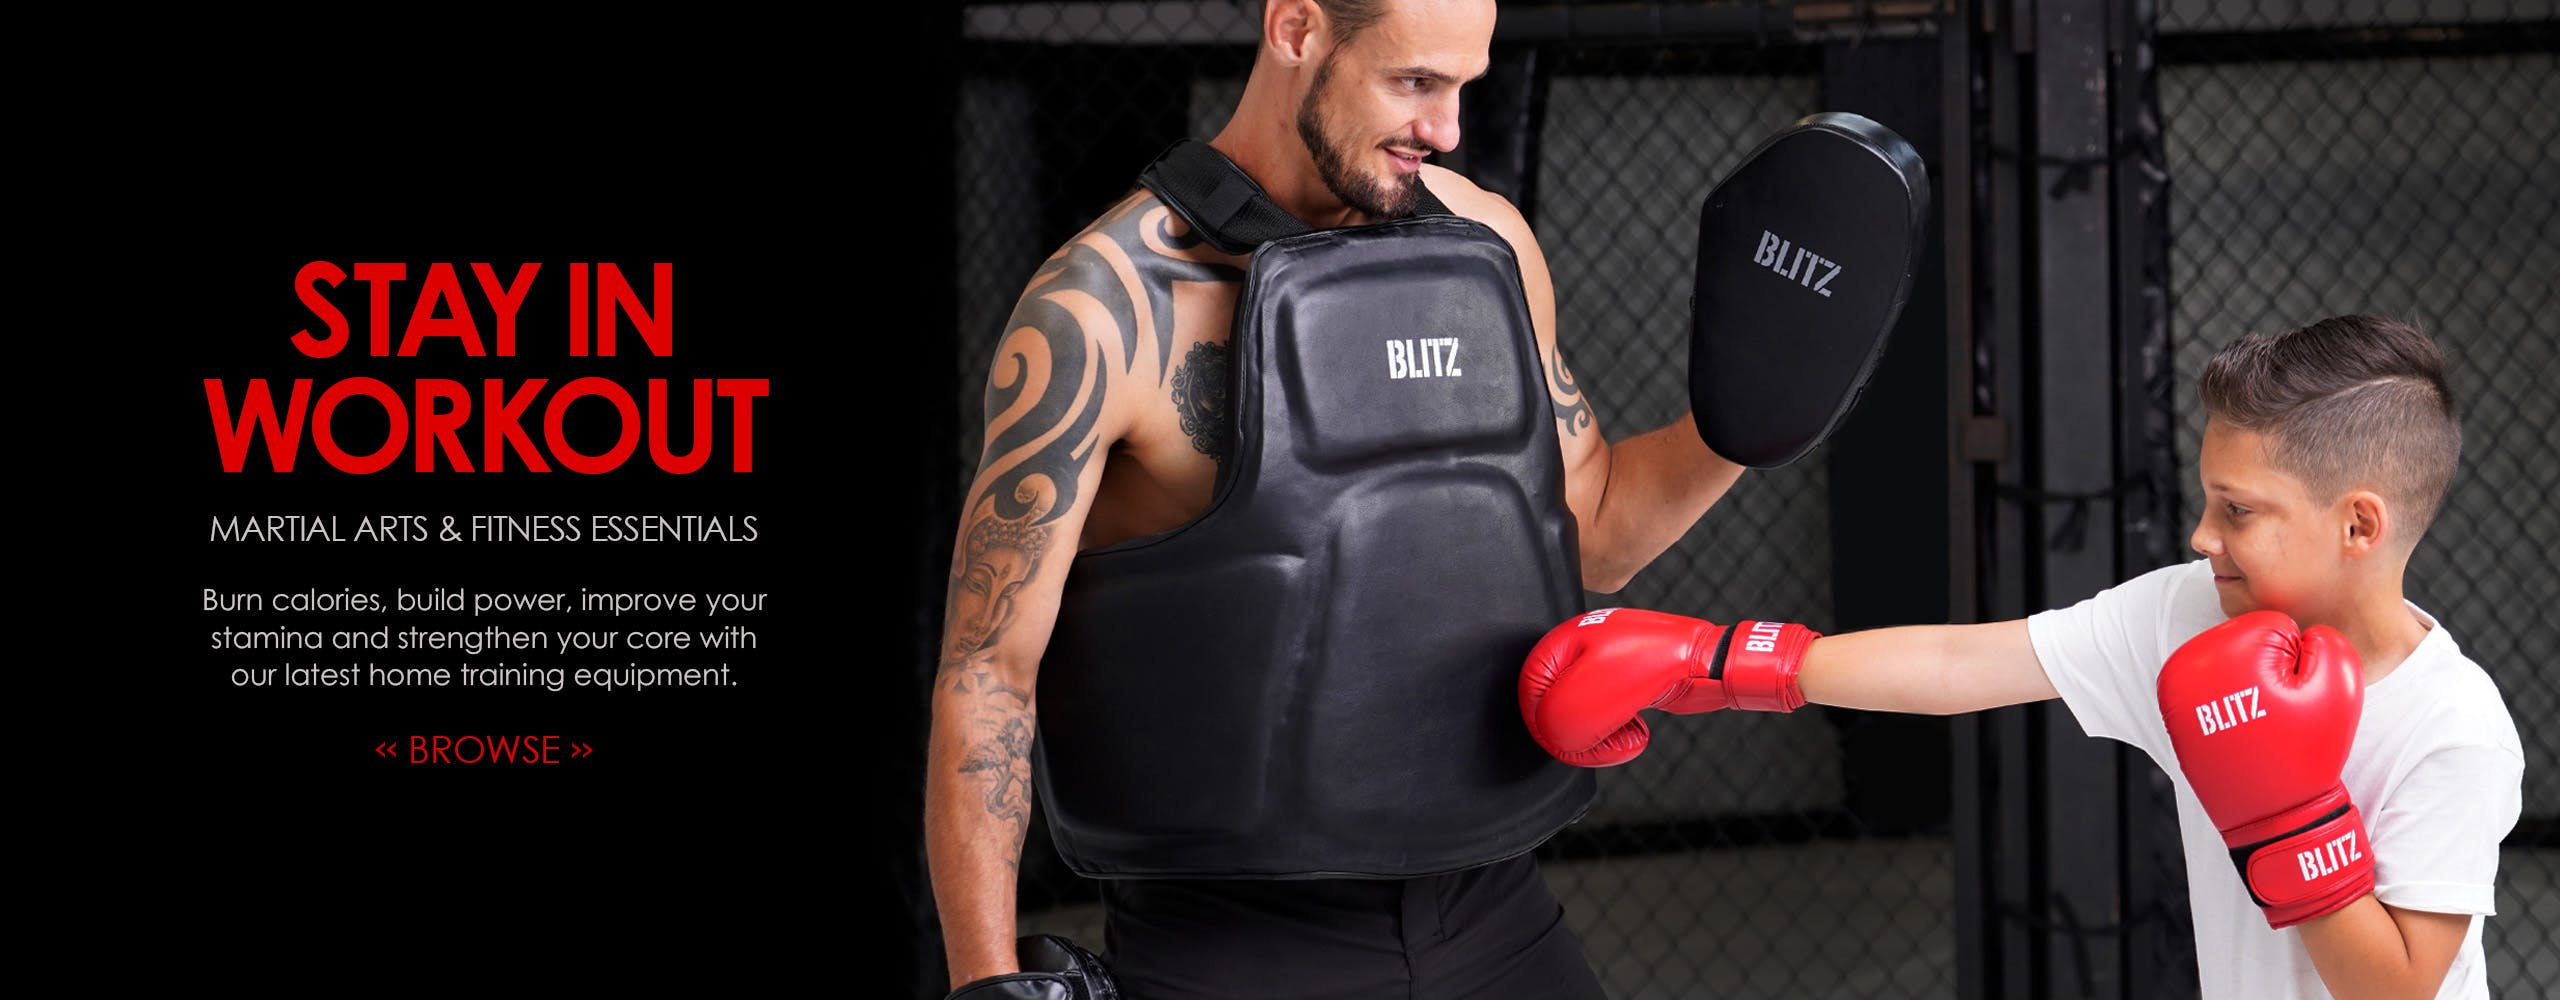 Stay in and workout with our latest Martial Arts and fitness essentials.